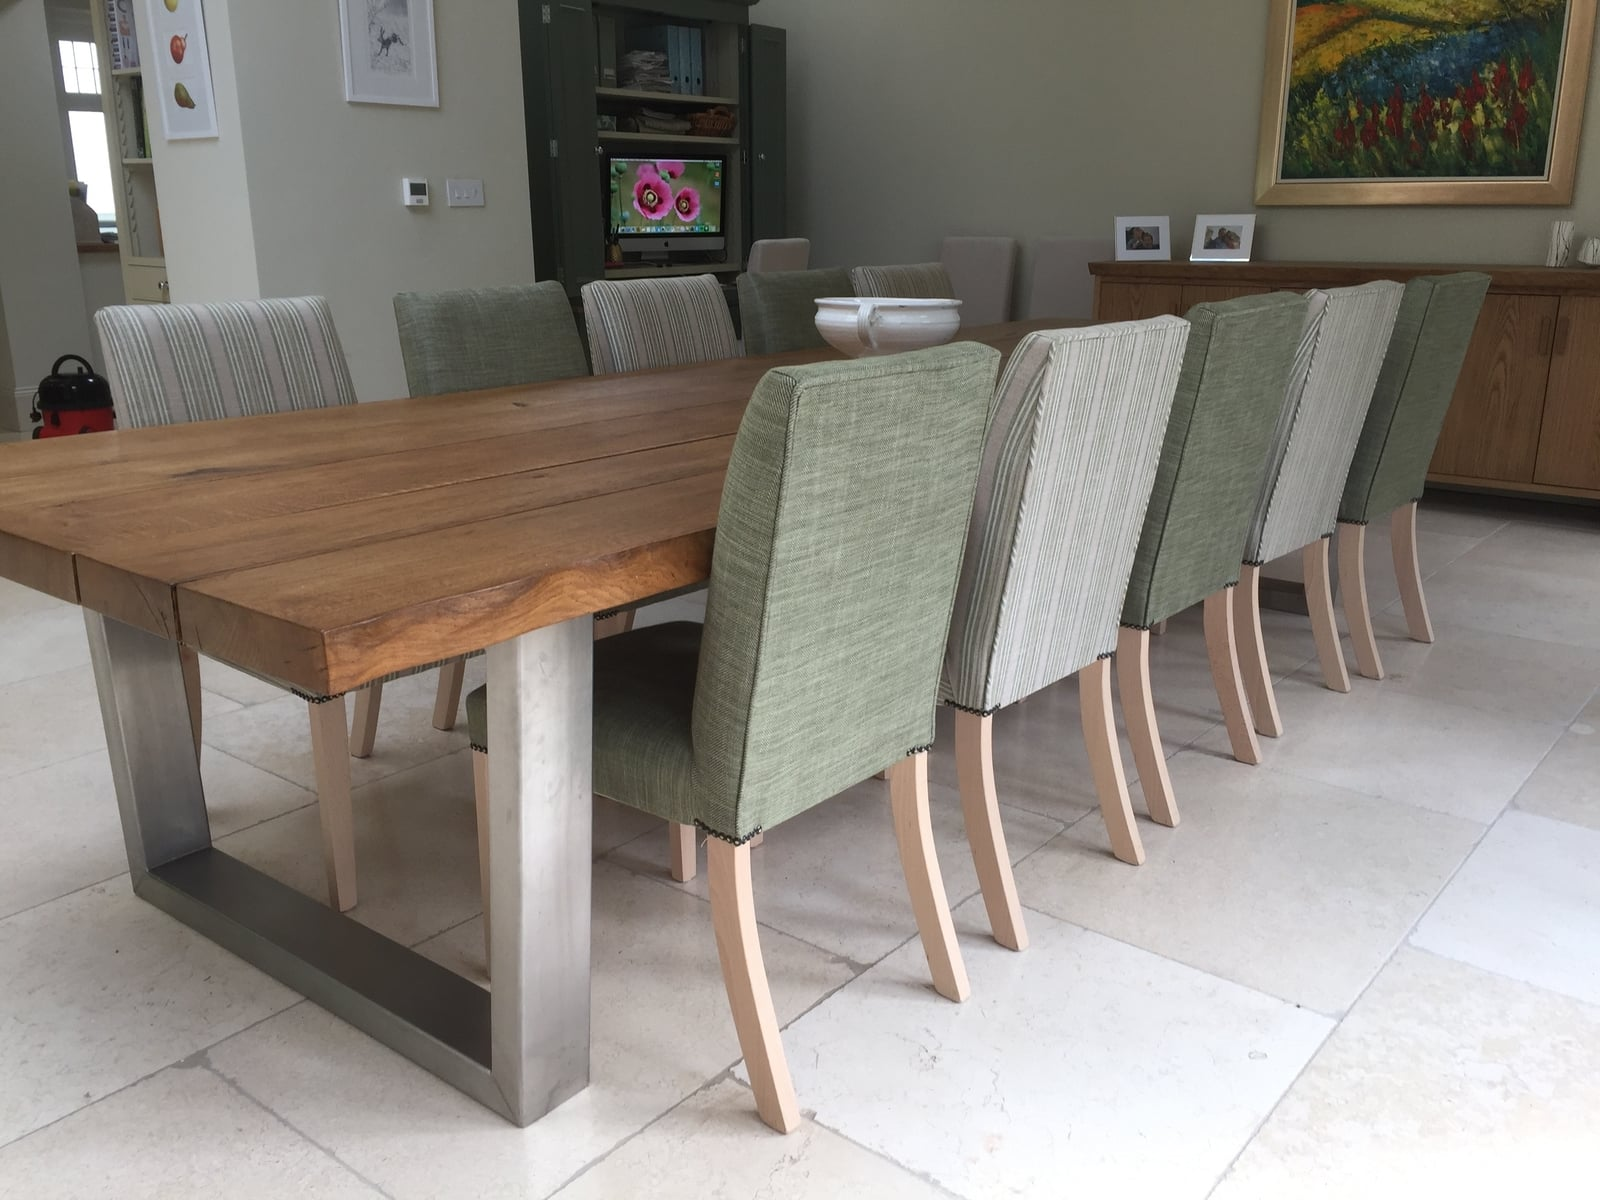 Large oak sideboard and dining table setproject 531Abacus Tables image 2